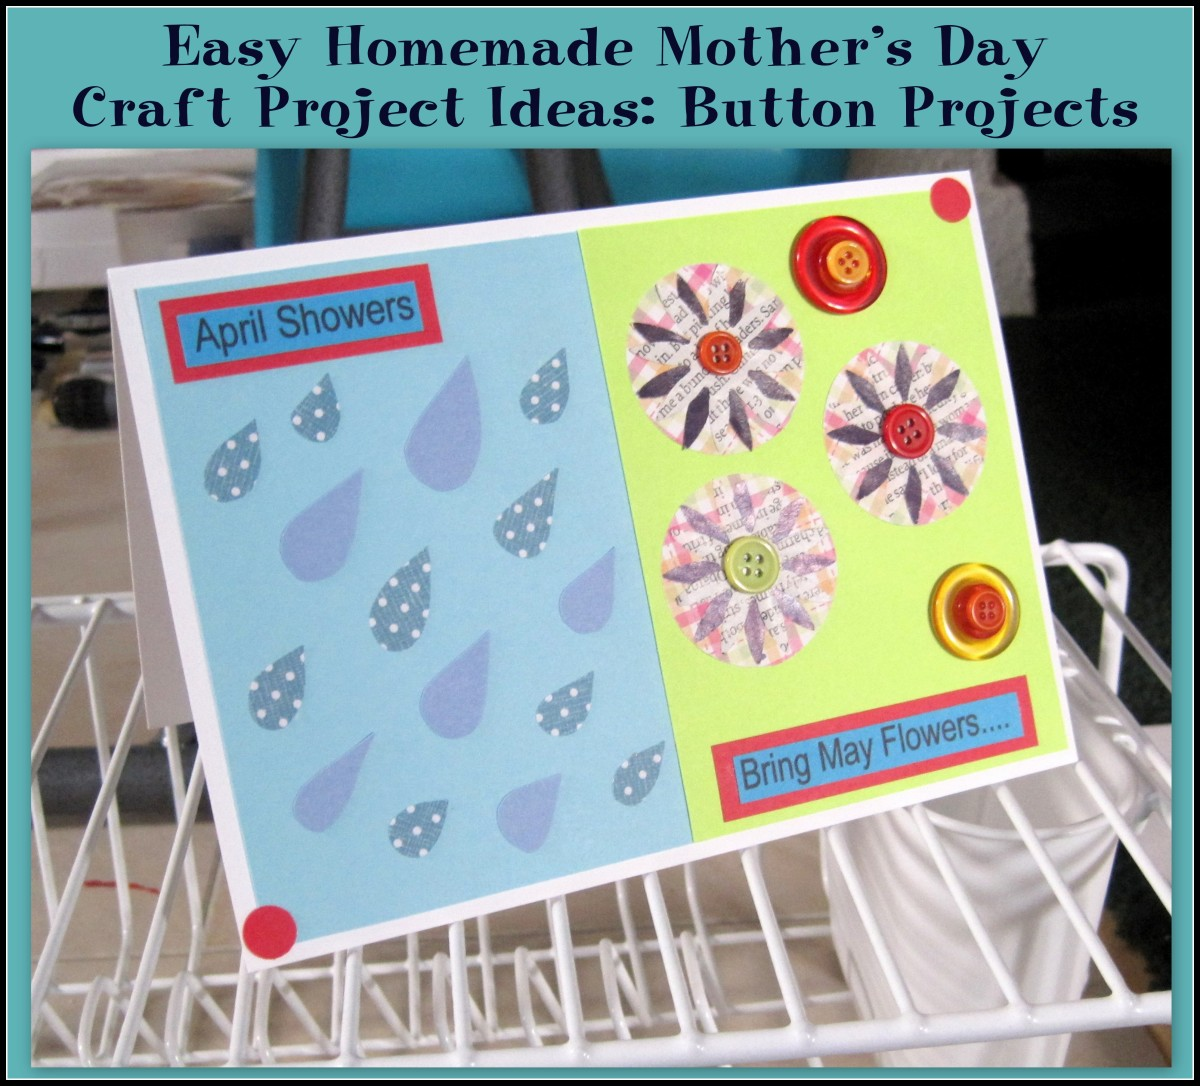 Easy homemade mother 39 s day craft project ideas button for Easy craft projects for mother s day